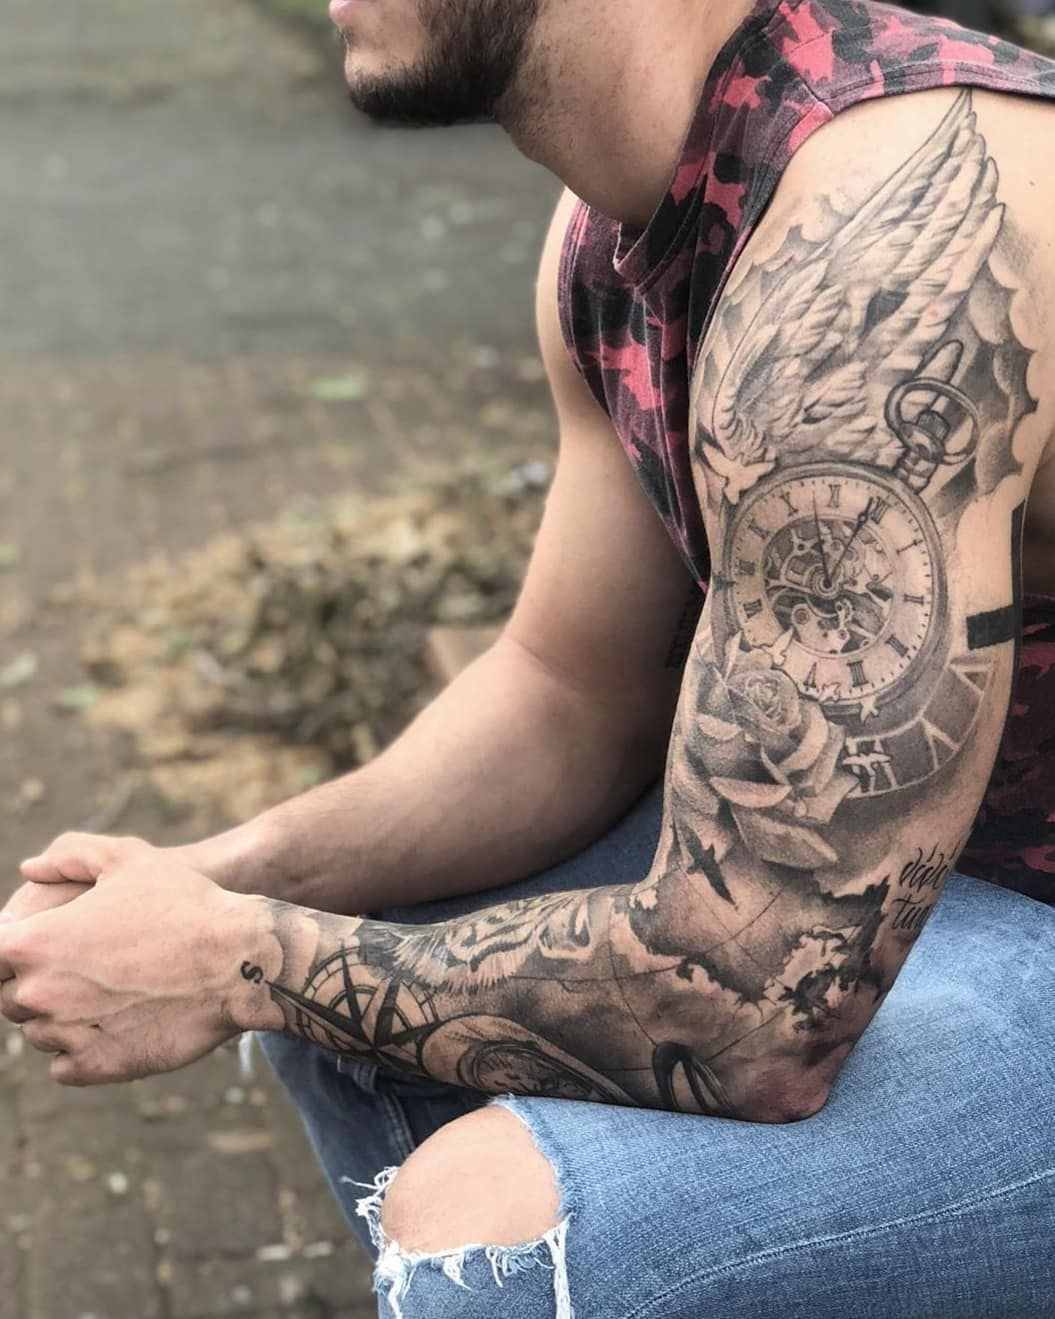 Find The Tattoo Artist That S Right For You Alpaca Ink Find The Tattoo Artist That S Right In 2020 Tattoo Ideen Manner Arm Tattoo Ideen Manner Manner Tattoo Ideen